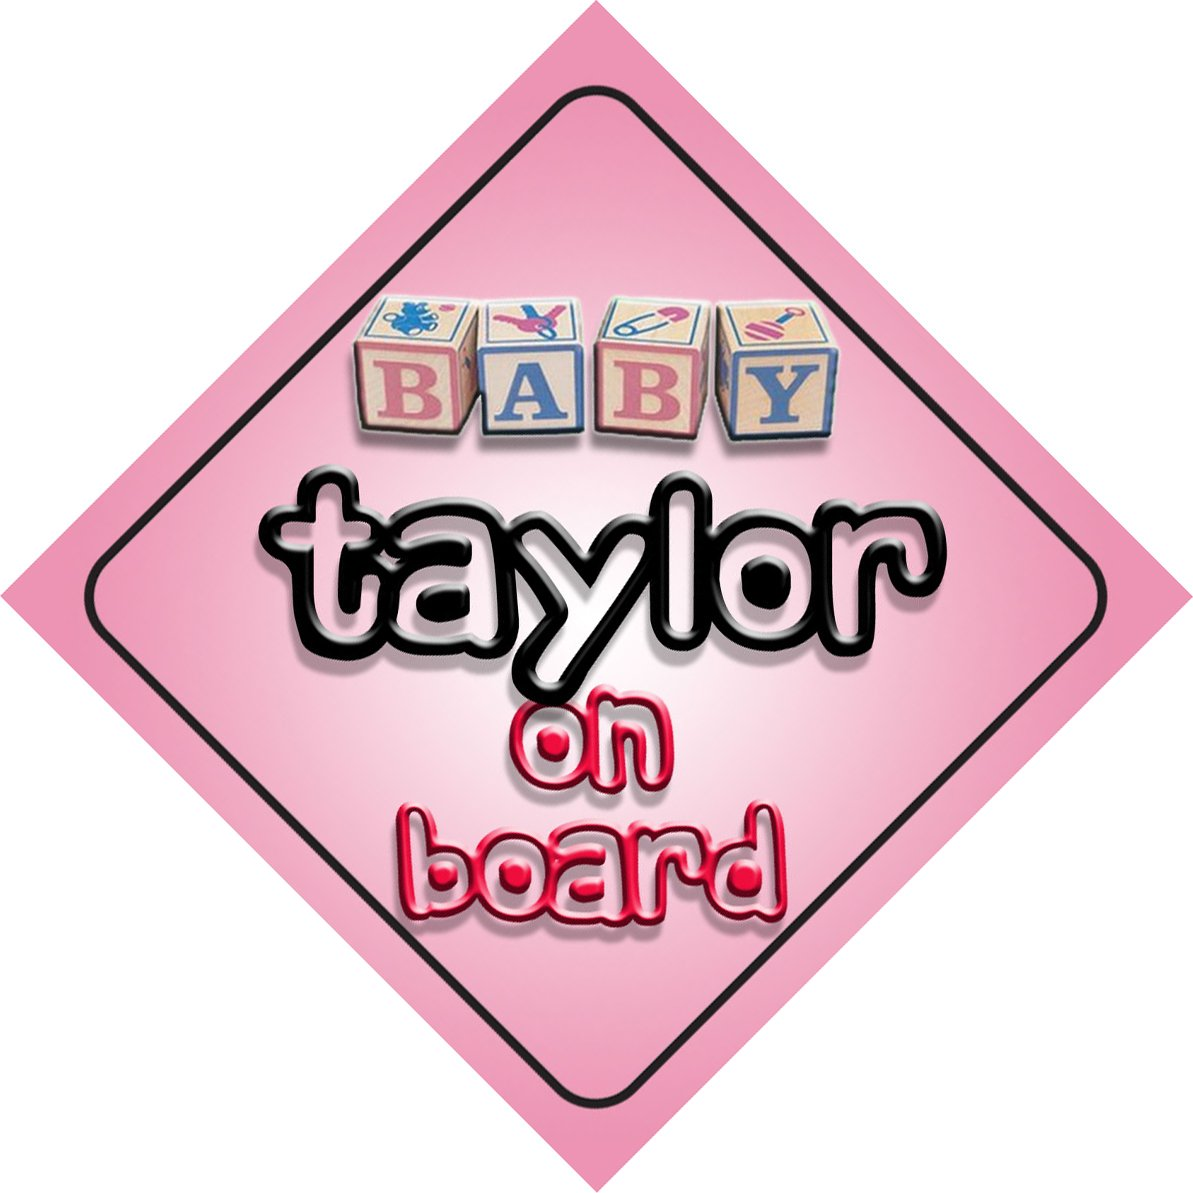 Baby Girl Taylor on board novelty car sign gift/present for new child/newborn baby